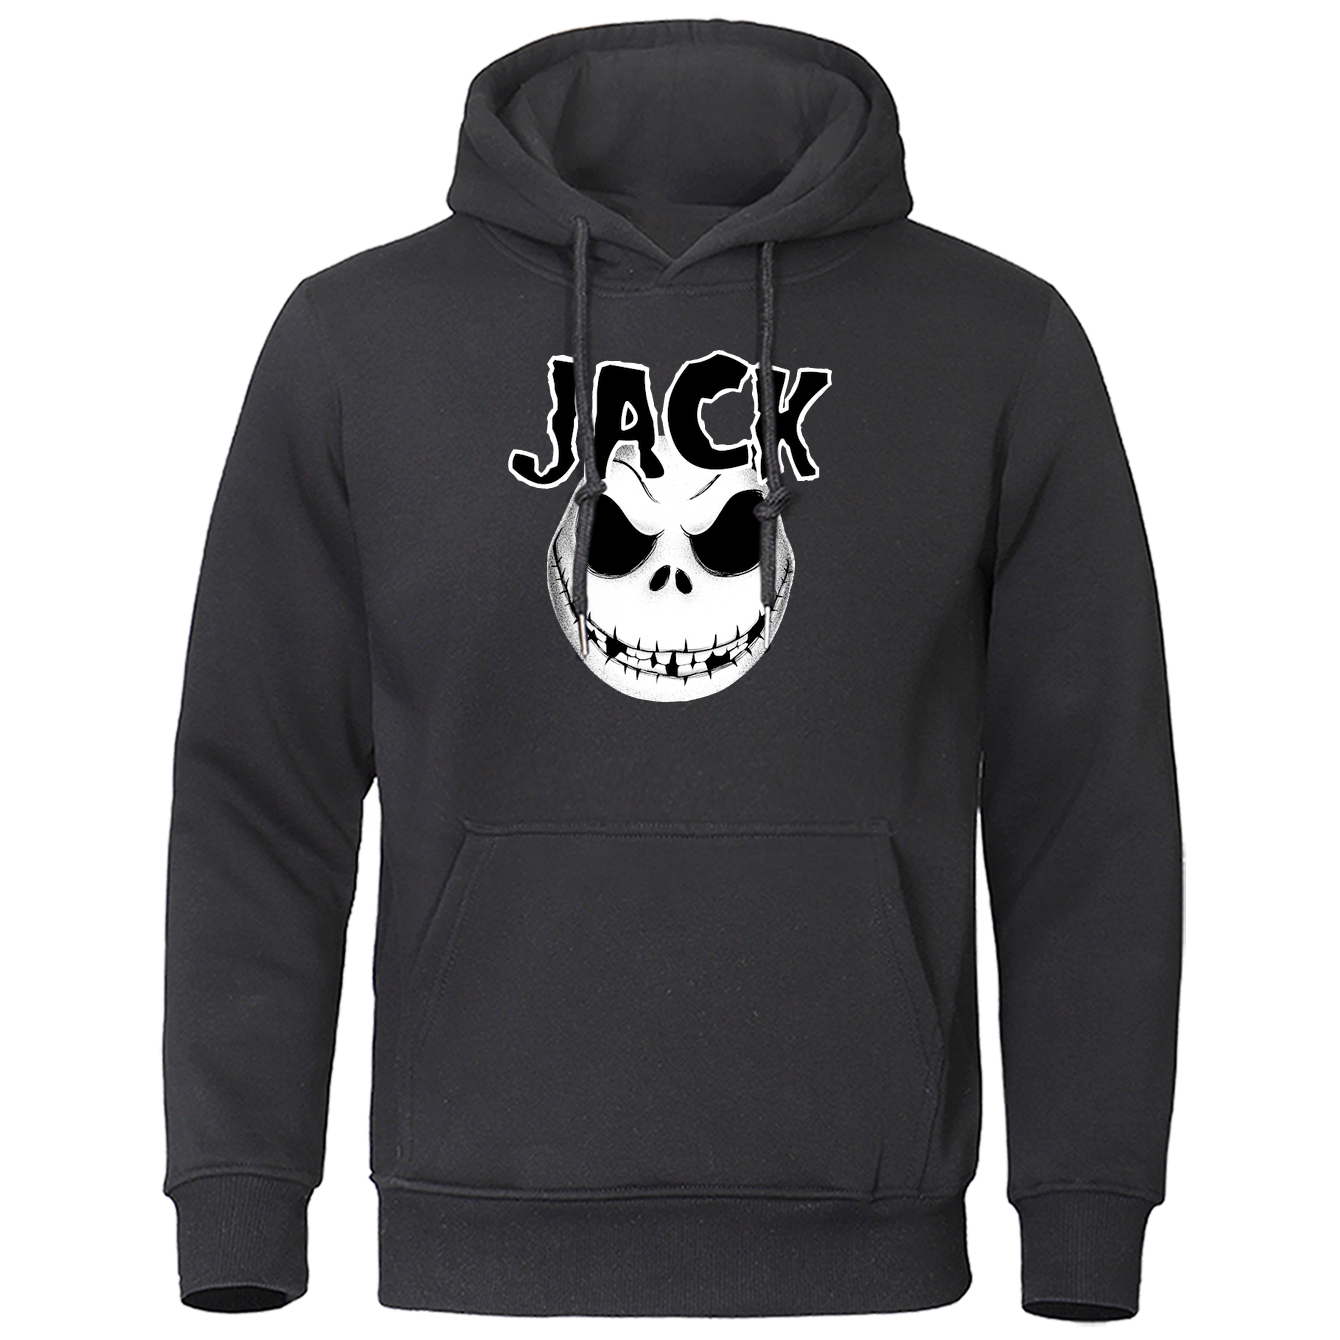 Jack Skellington Sweatshirt Men 2020 Hot Sale Fashion Brand Hoodies Male Novelty Print Halloween Skull Tracksuit Mens Streetwear